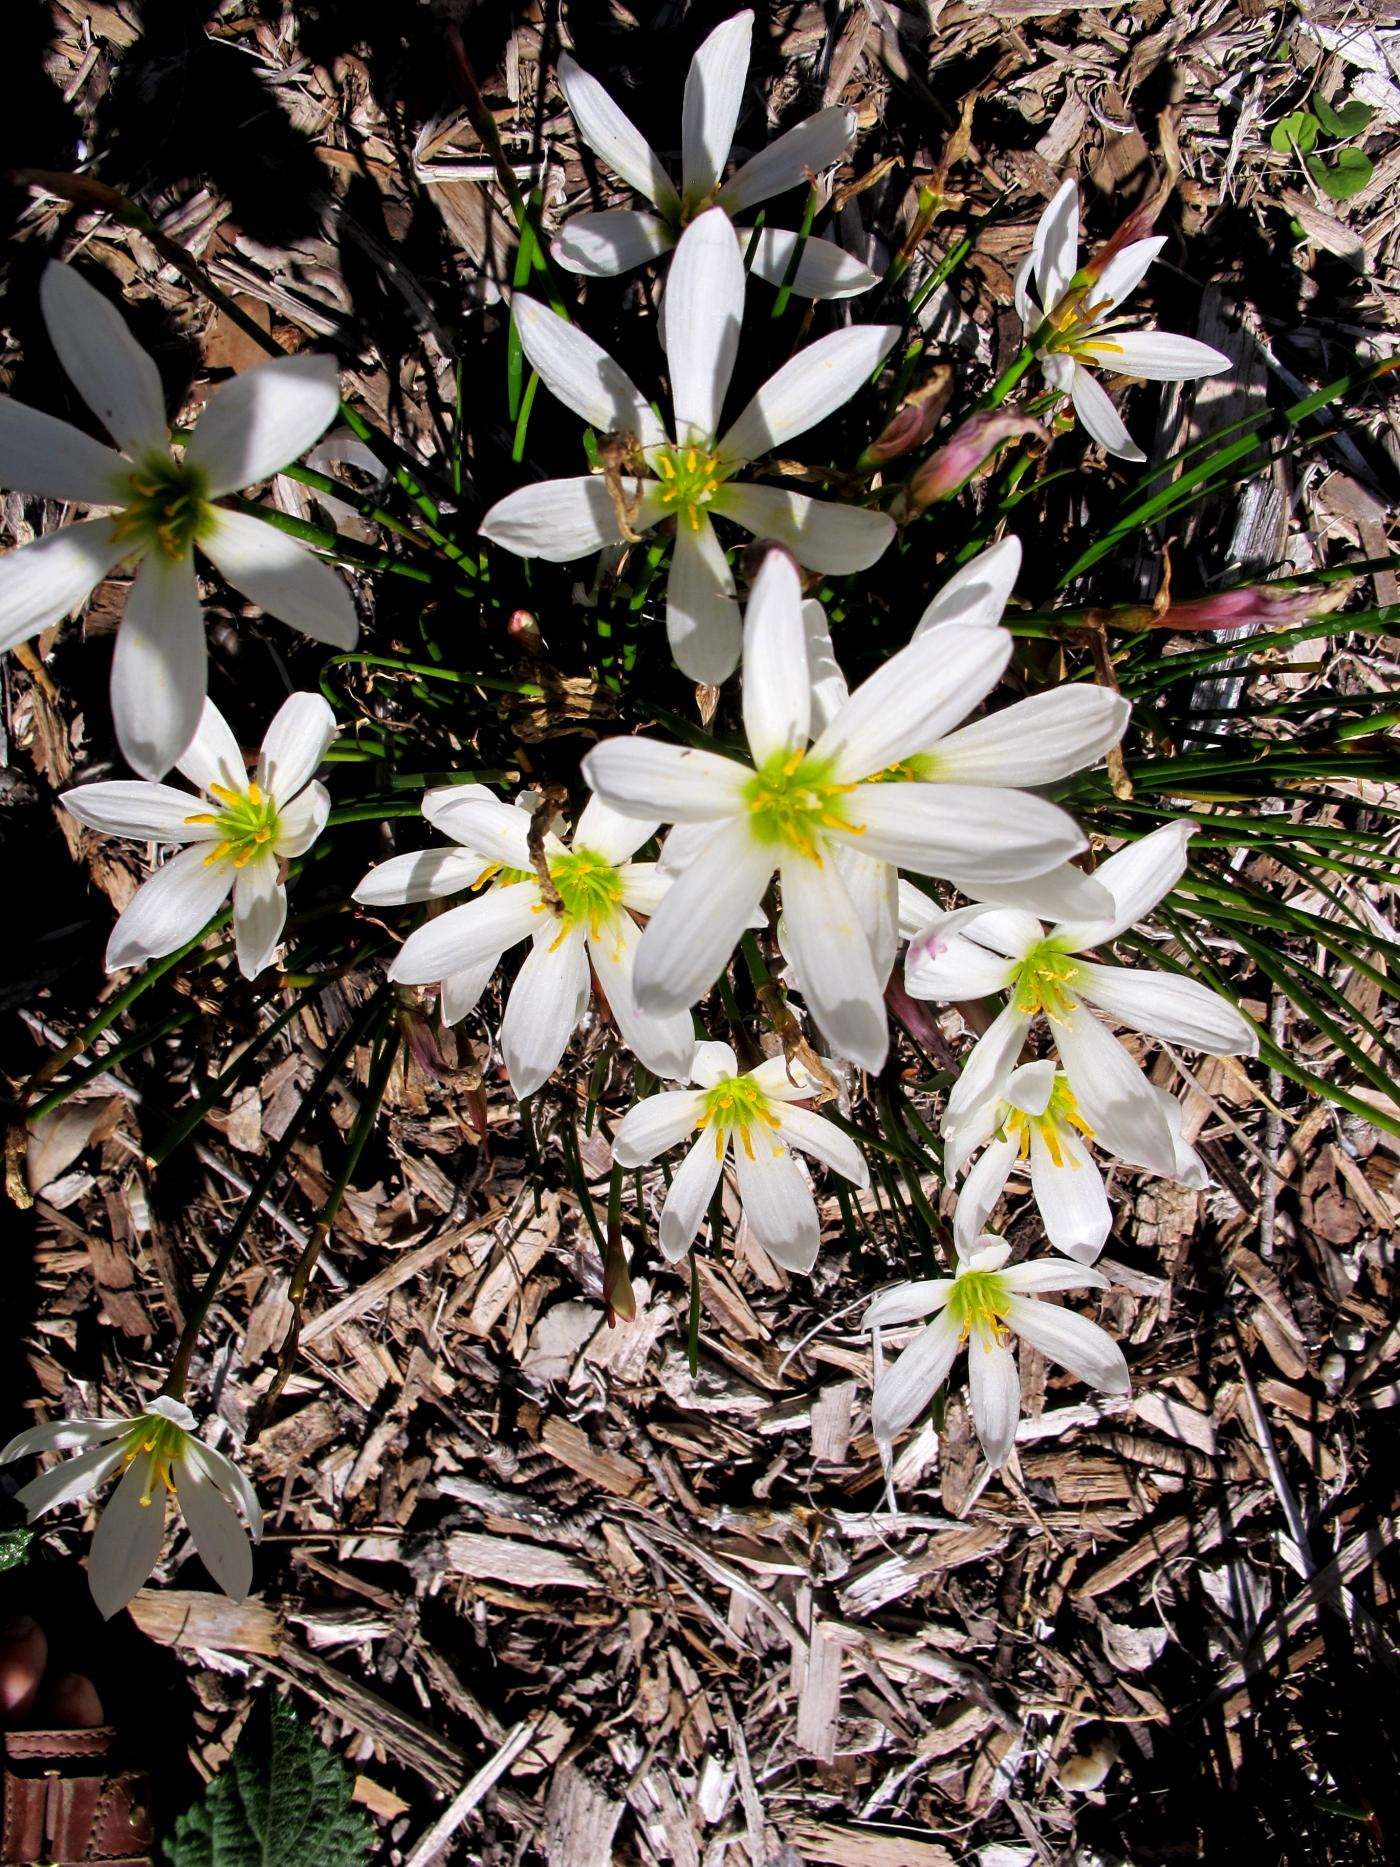 Rain Lily White (Zephyranthes Candida)